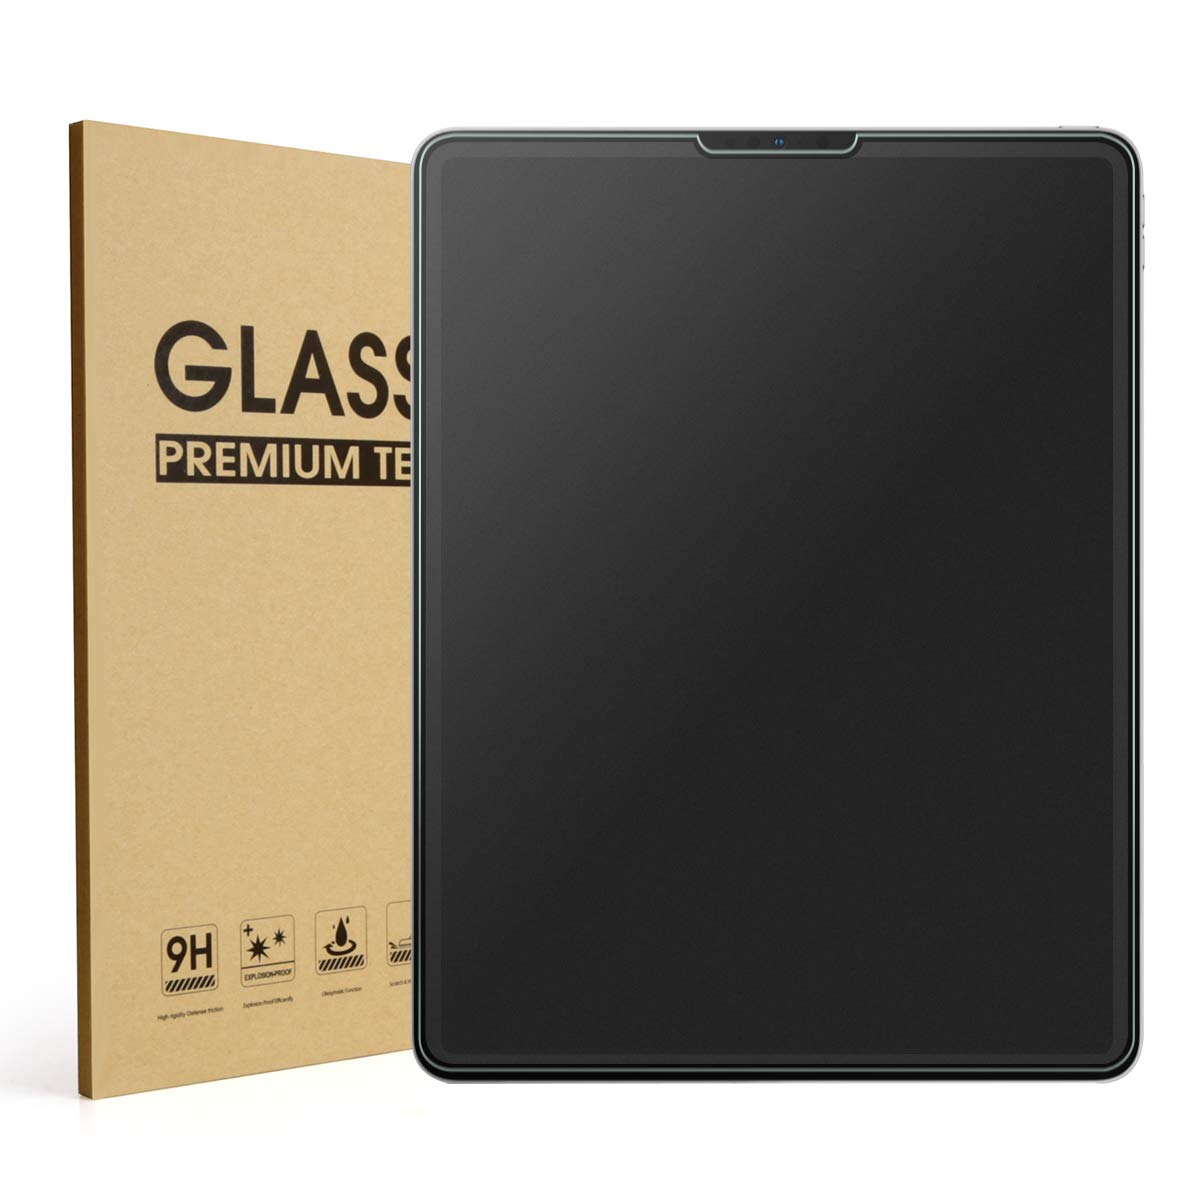 Mothca Matte Screen Protector for iPad Pro 11/10.9 Inch 2021/2020/2018, Anti-Glare & Anti-Fingerprint No Dazzling 9H Hardness HD Tempered Glass Shield for iPad Pro 11, Smooth as Silk Amazing Touch Best Companion for Games